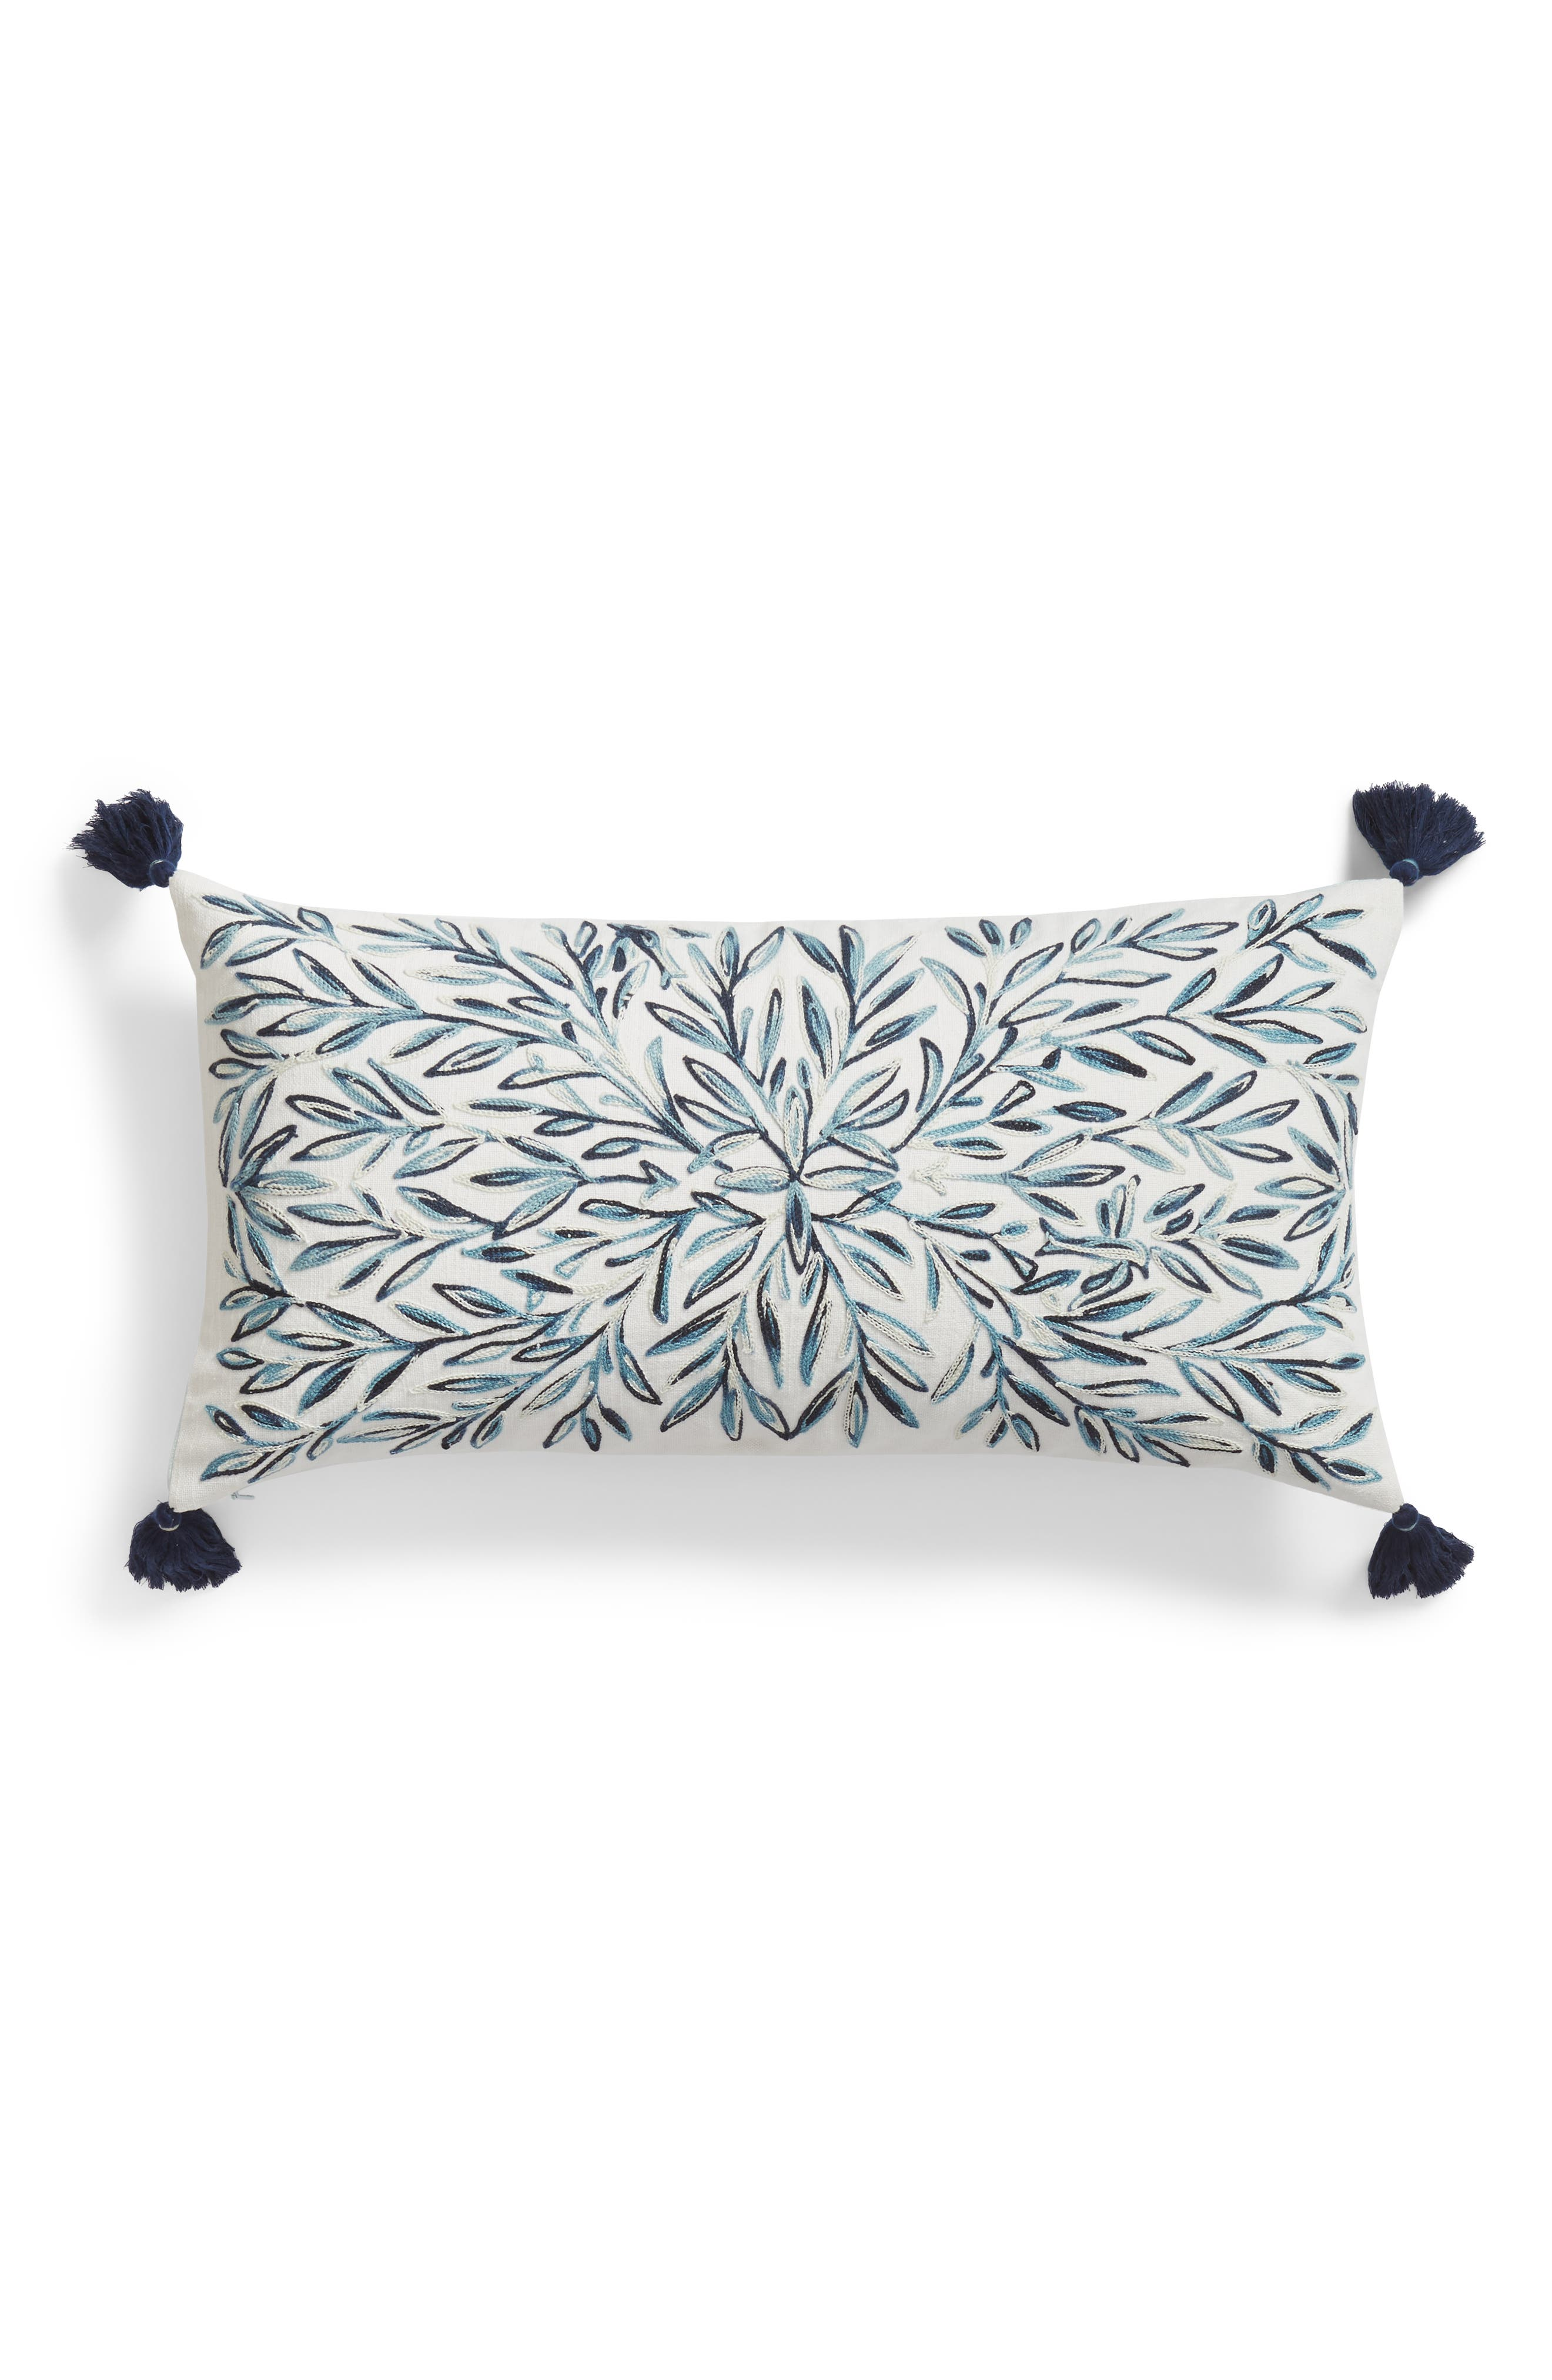 Space Dyed Embroidered Accent Pillow,                             Main thumbnail 1, color,                             TEAL HYDRO MULTI